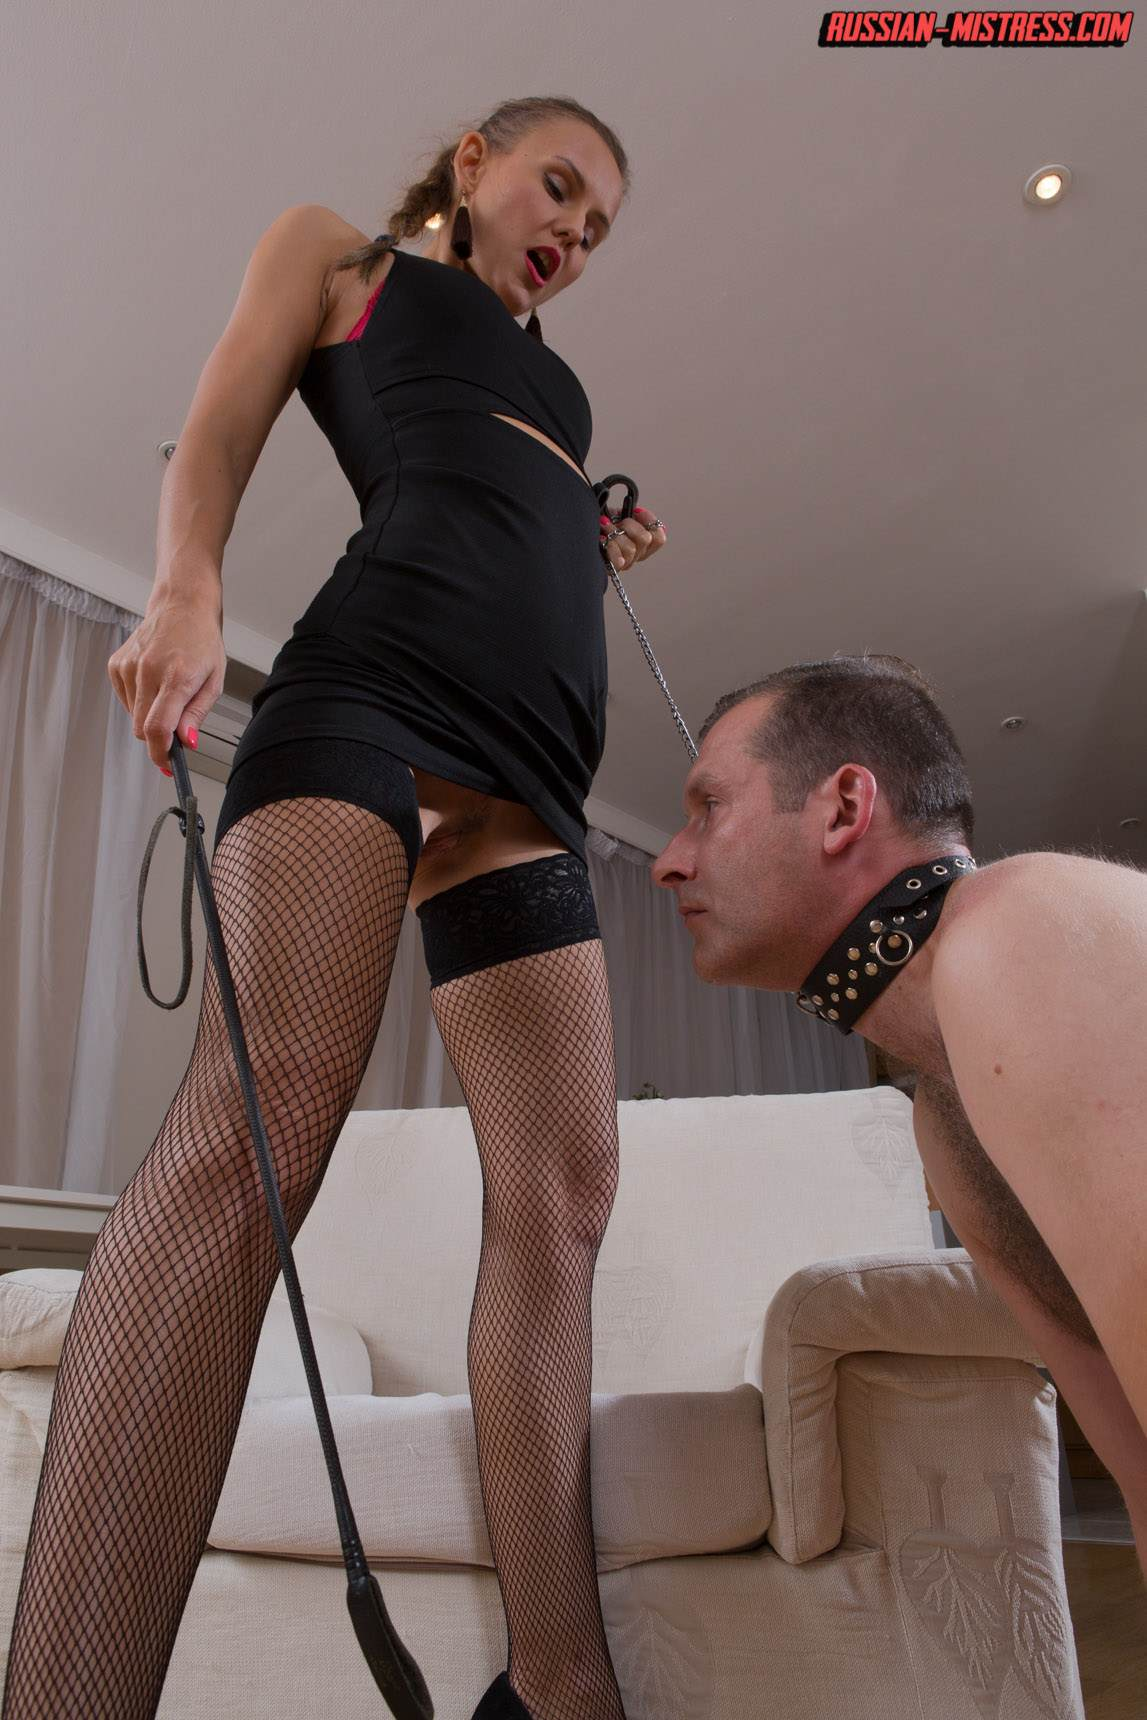 Picture #7 of Mistress is keeping slave motivated for legs worship with harsh whip lashes and then rewards him with deep anal strap-on penetration